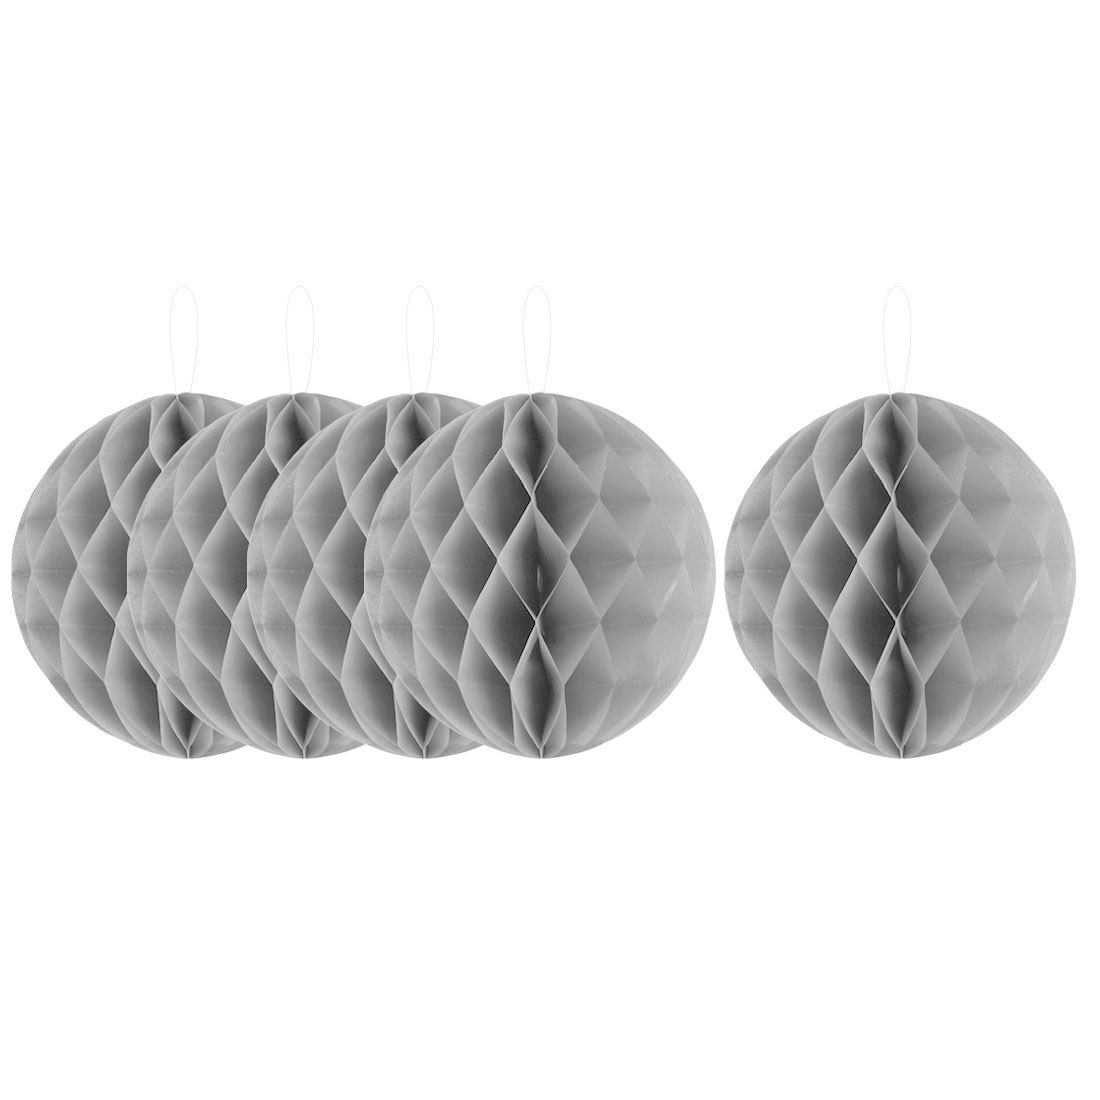 Household Party Paper Wall Window Door DIY Decoration Honeycomb Ball Gray 12 Inch Dia 5 Pcs